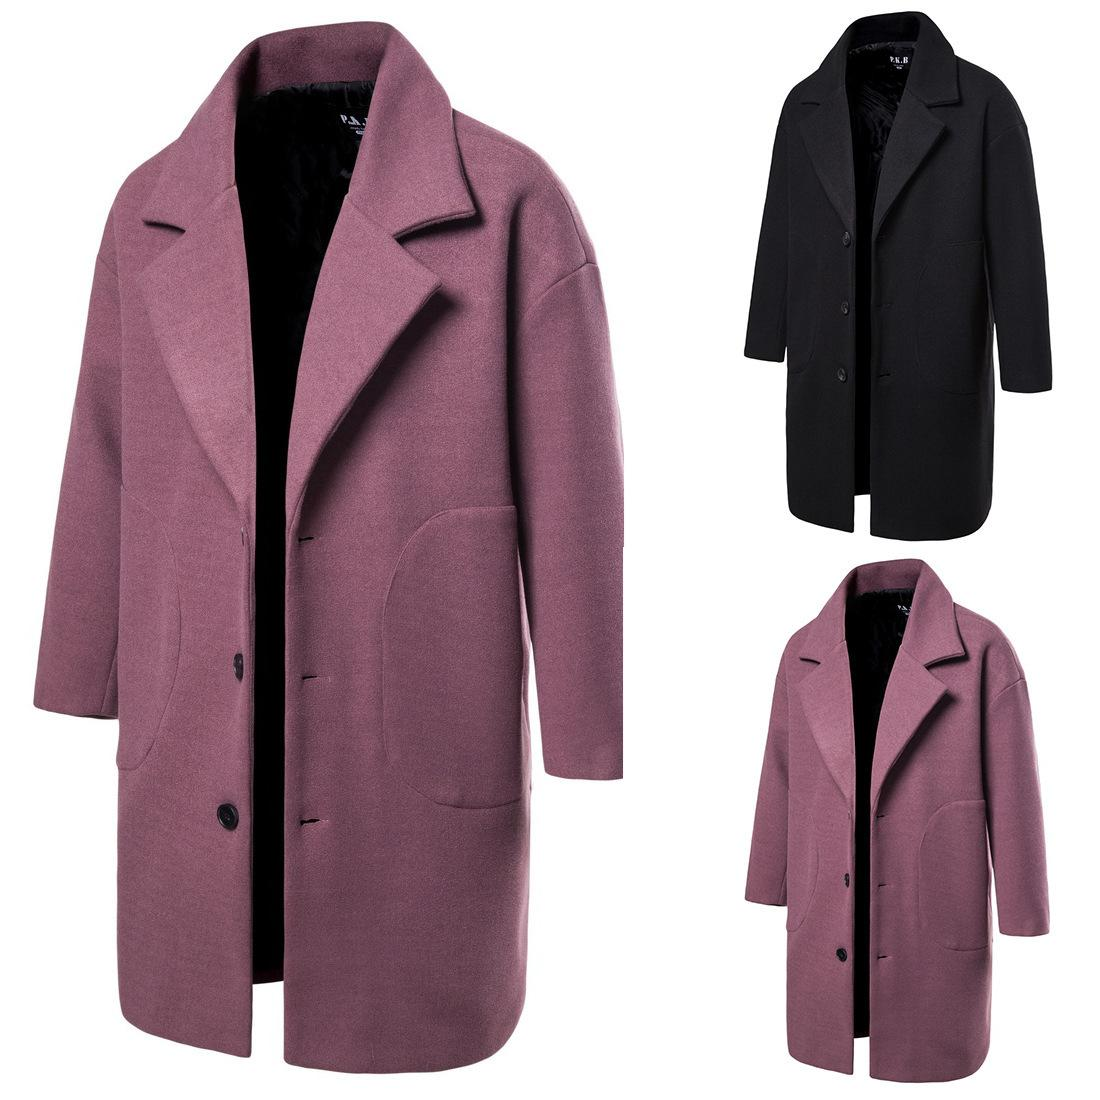 2019 Autumn And Winter Trench Coat Men Mid-length Woolen Jacket Solid Color Single-Breasted Trench Coat Coat